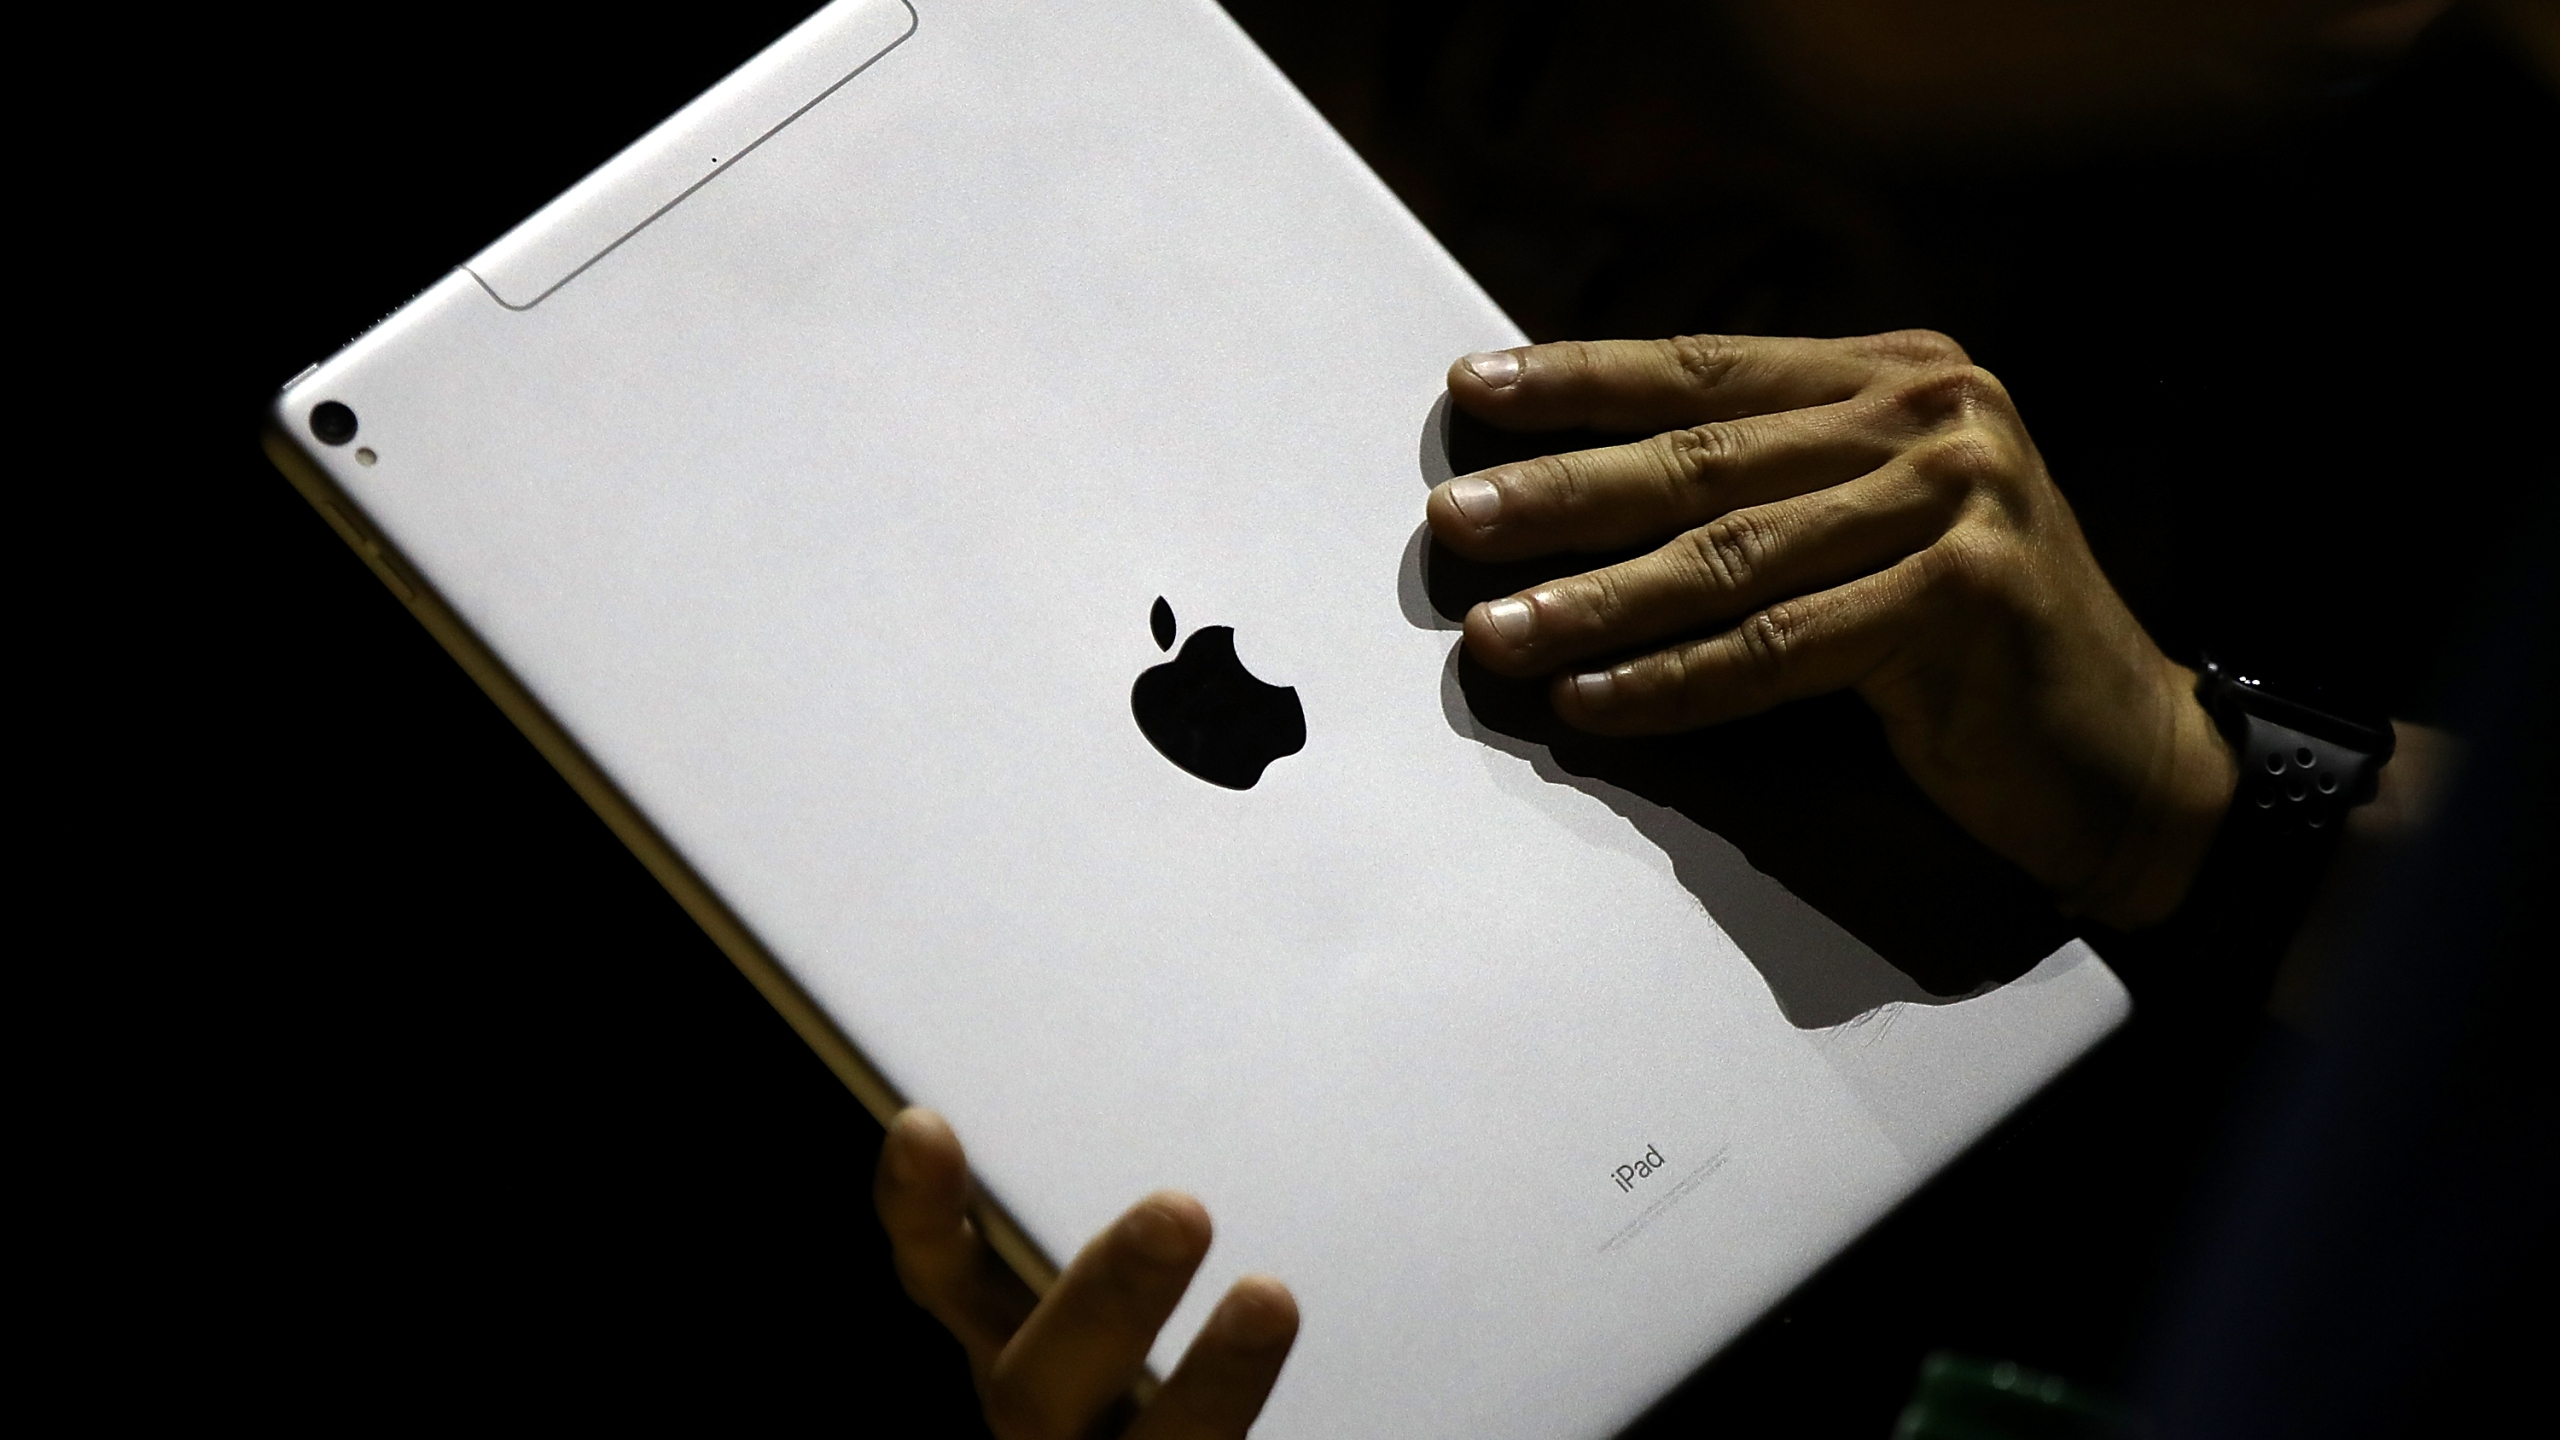 The new iPad Pro is displayed during the 2017 Apple Worldwide Developer Conference at the San Jose Convention Center on June 5, 2017, in San Jose, California. (Justin Sullivan/Getty Images)